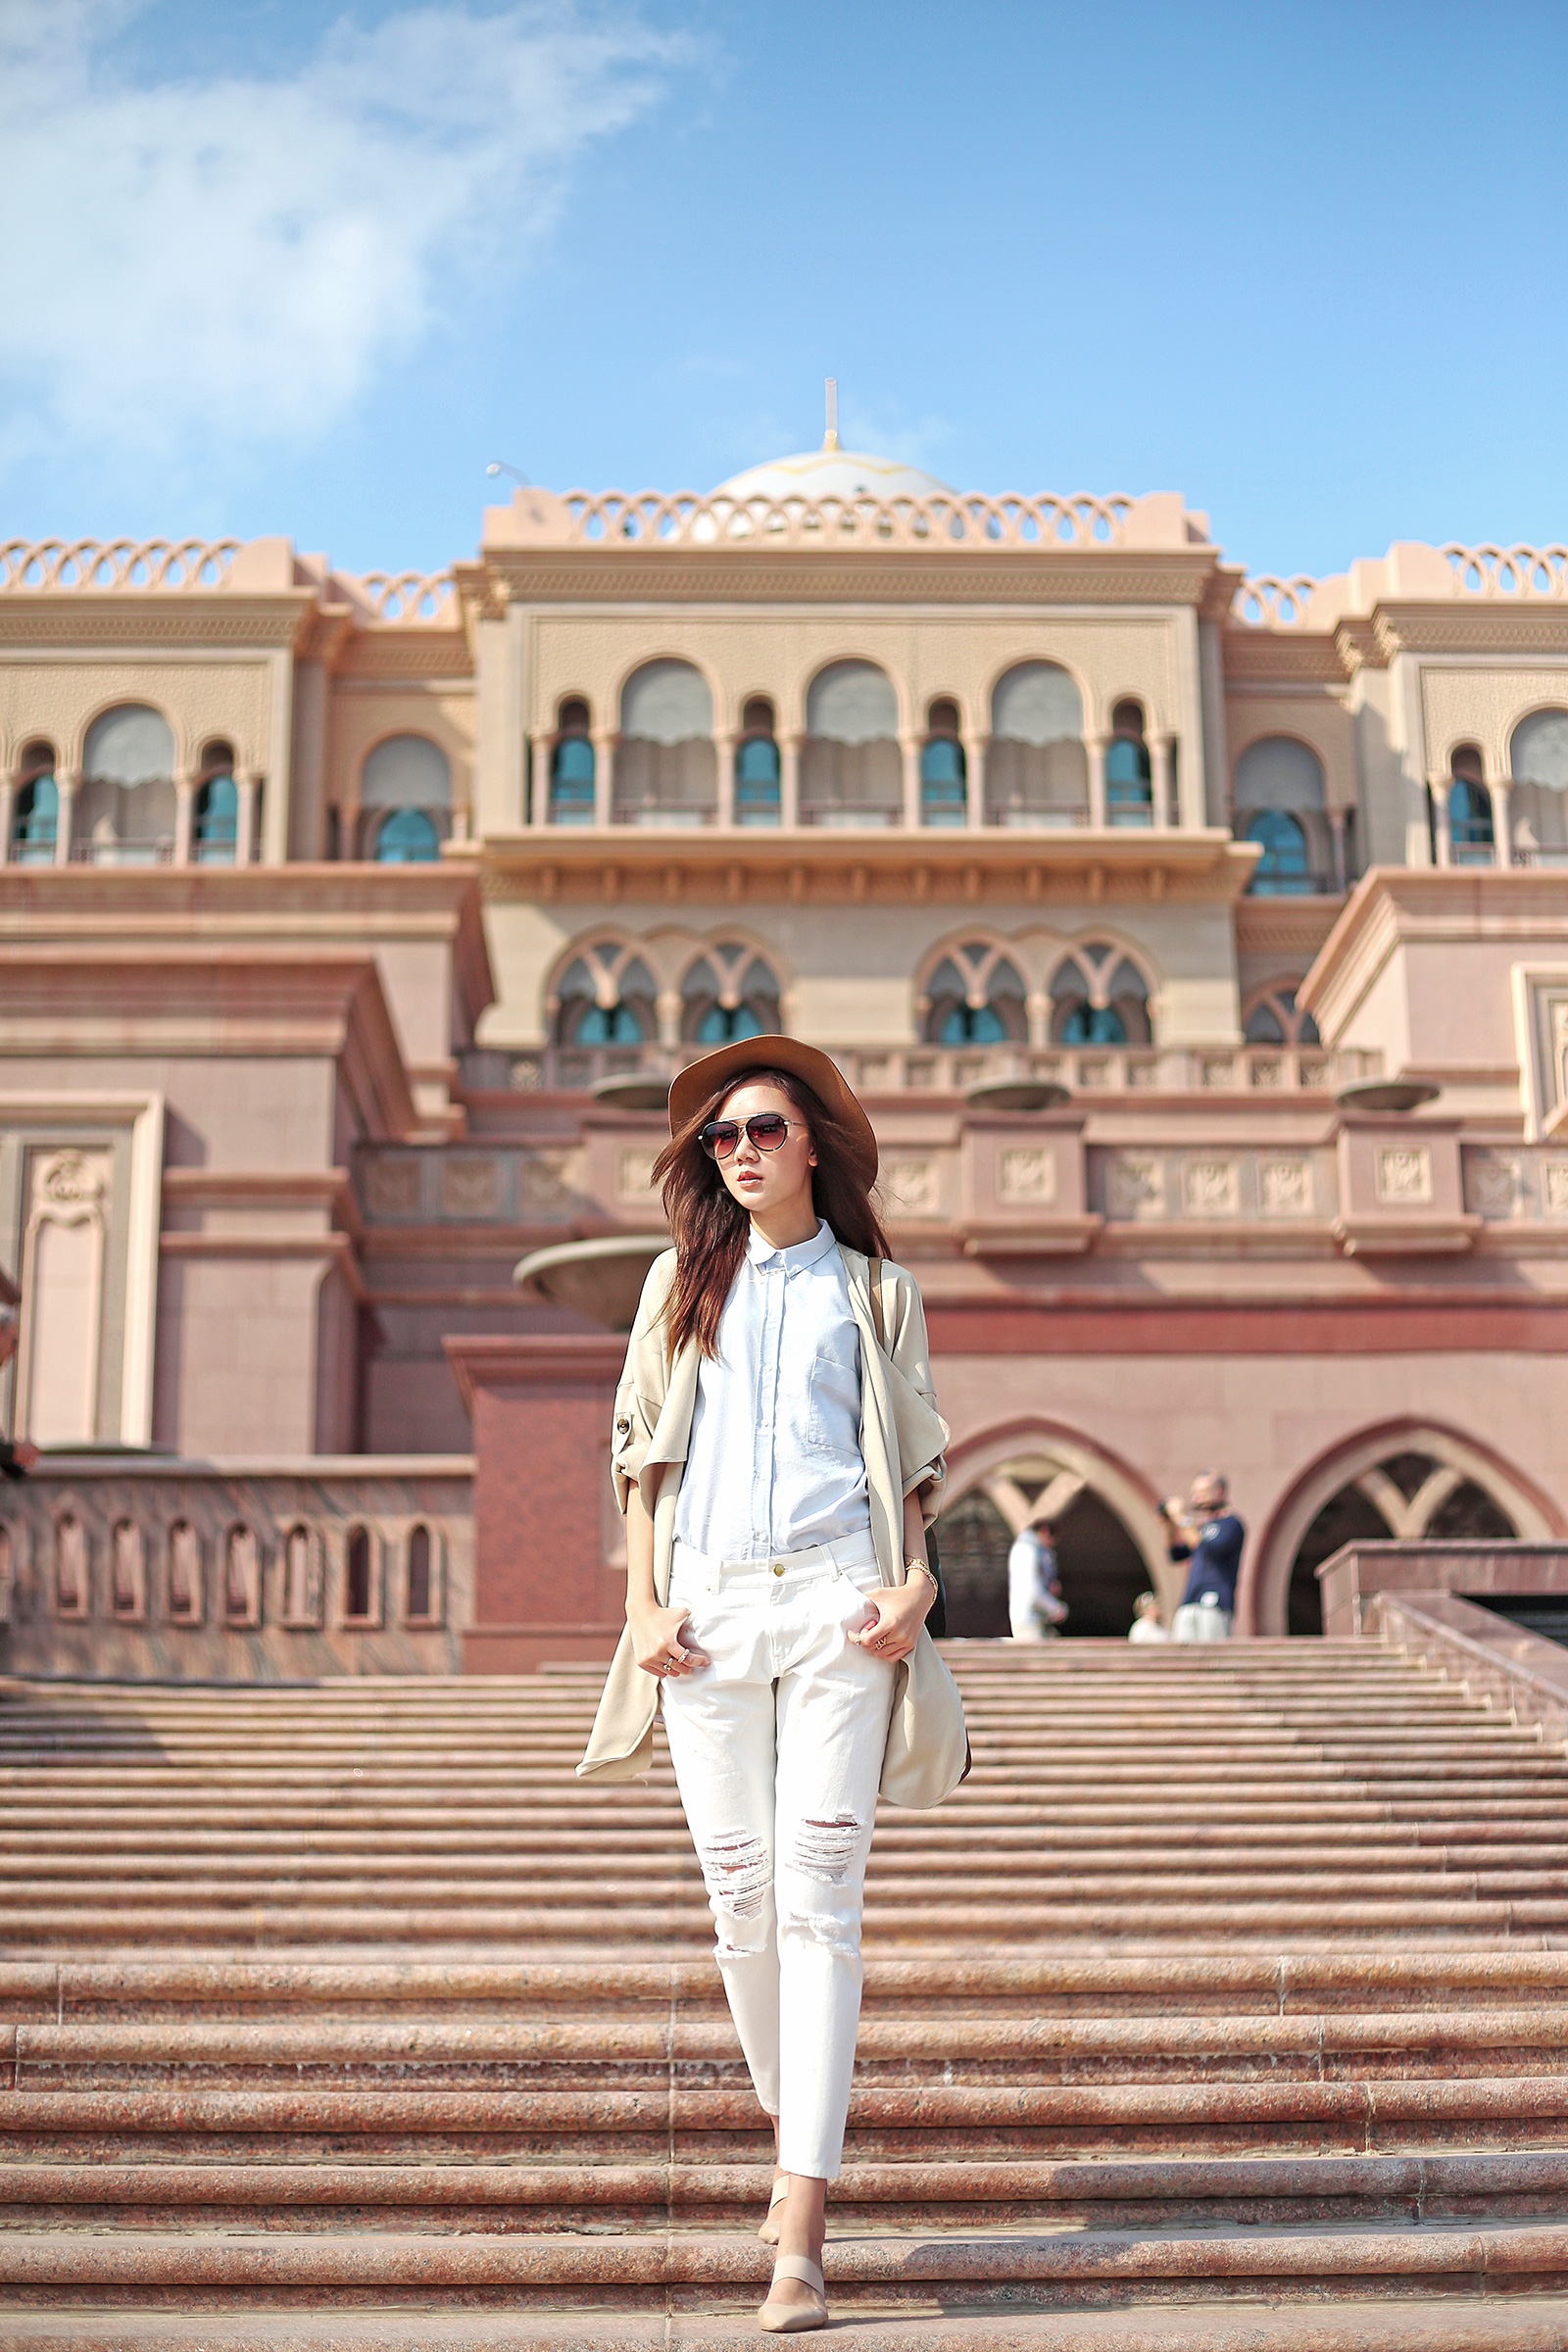 Emirates Palace Hotel, Abu Dhabi Private Tour | www.itscamilleco.com